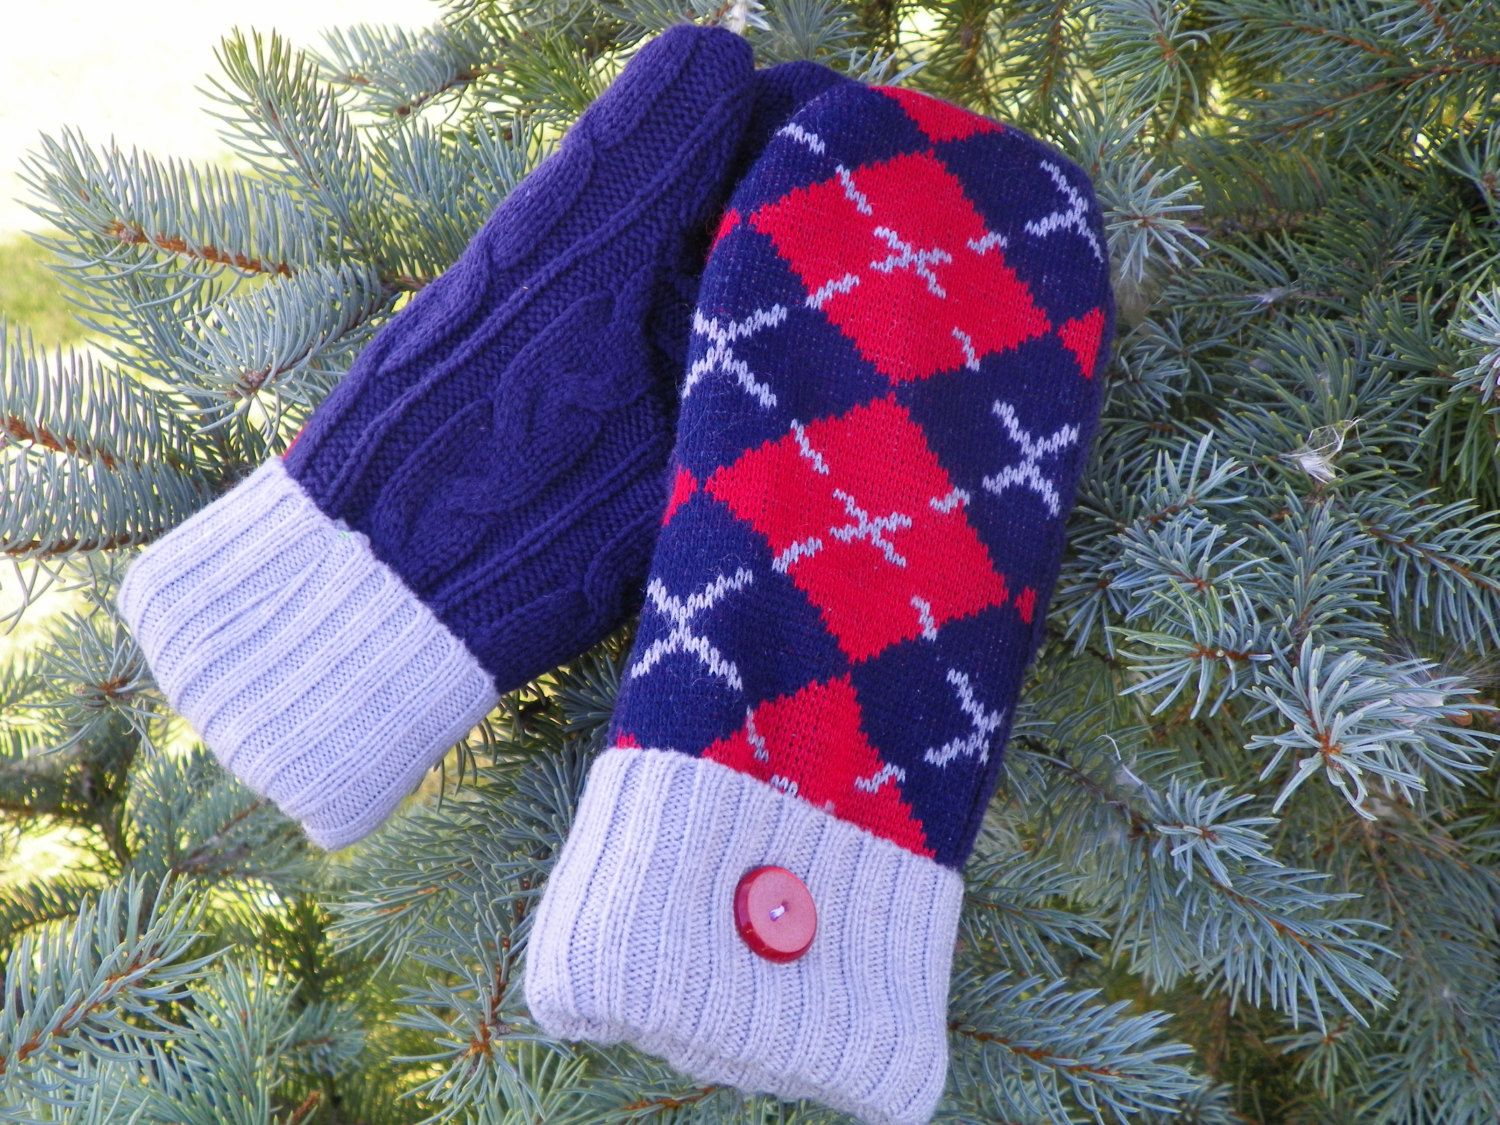 New to KatesHandiwork on Etsy: sweater mittens upcycled sweater mittens recycled sweater mittens ladies mittens handmade mittens kateshandiwork warm mittens Navy (25.00 USD)